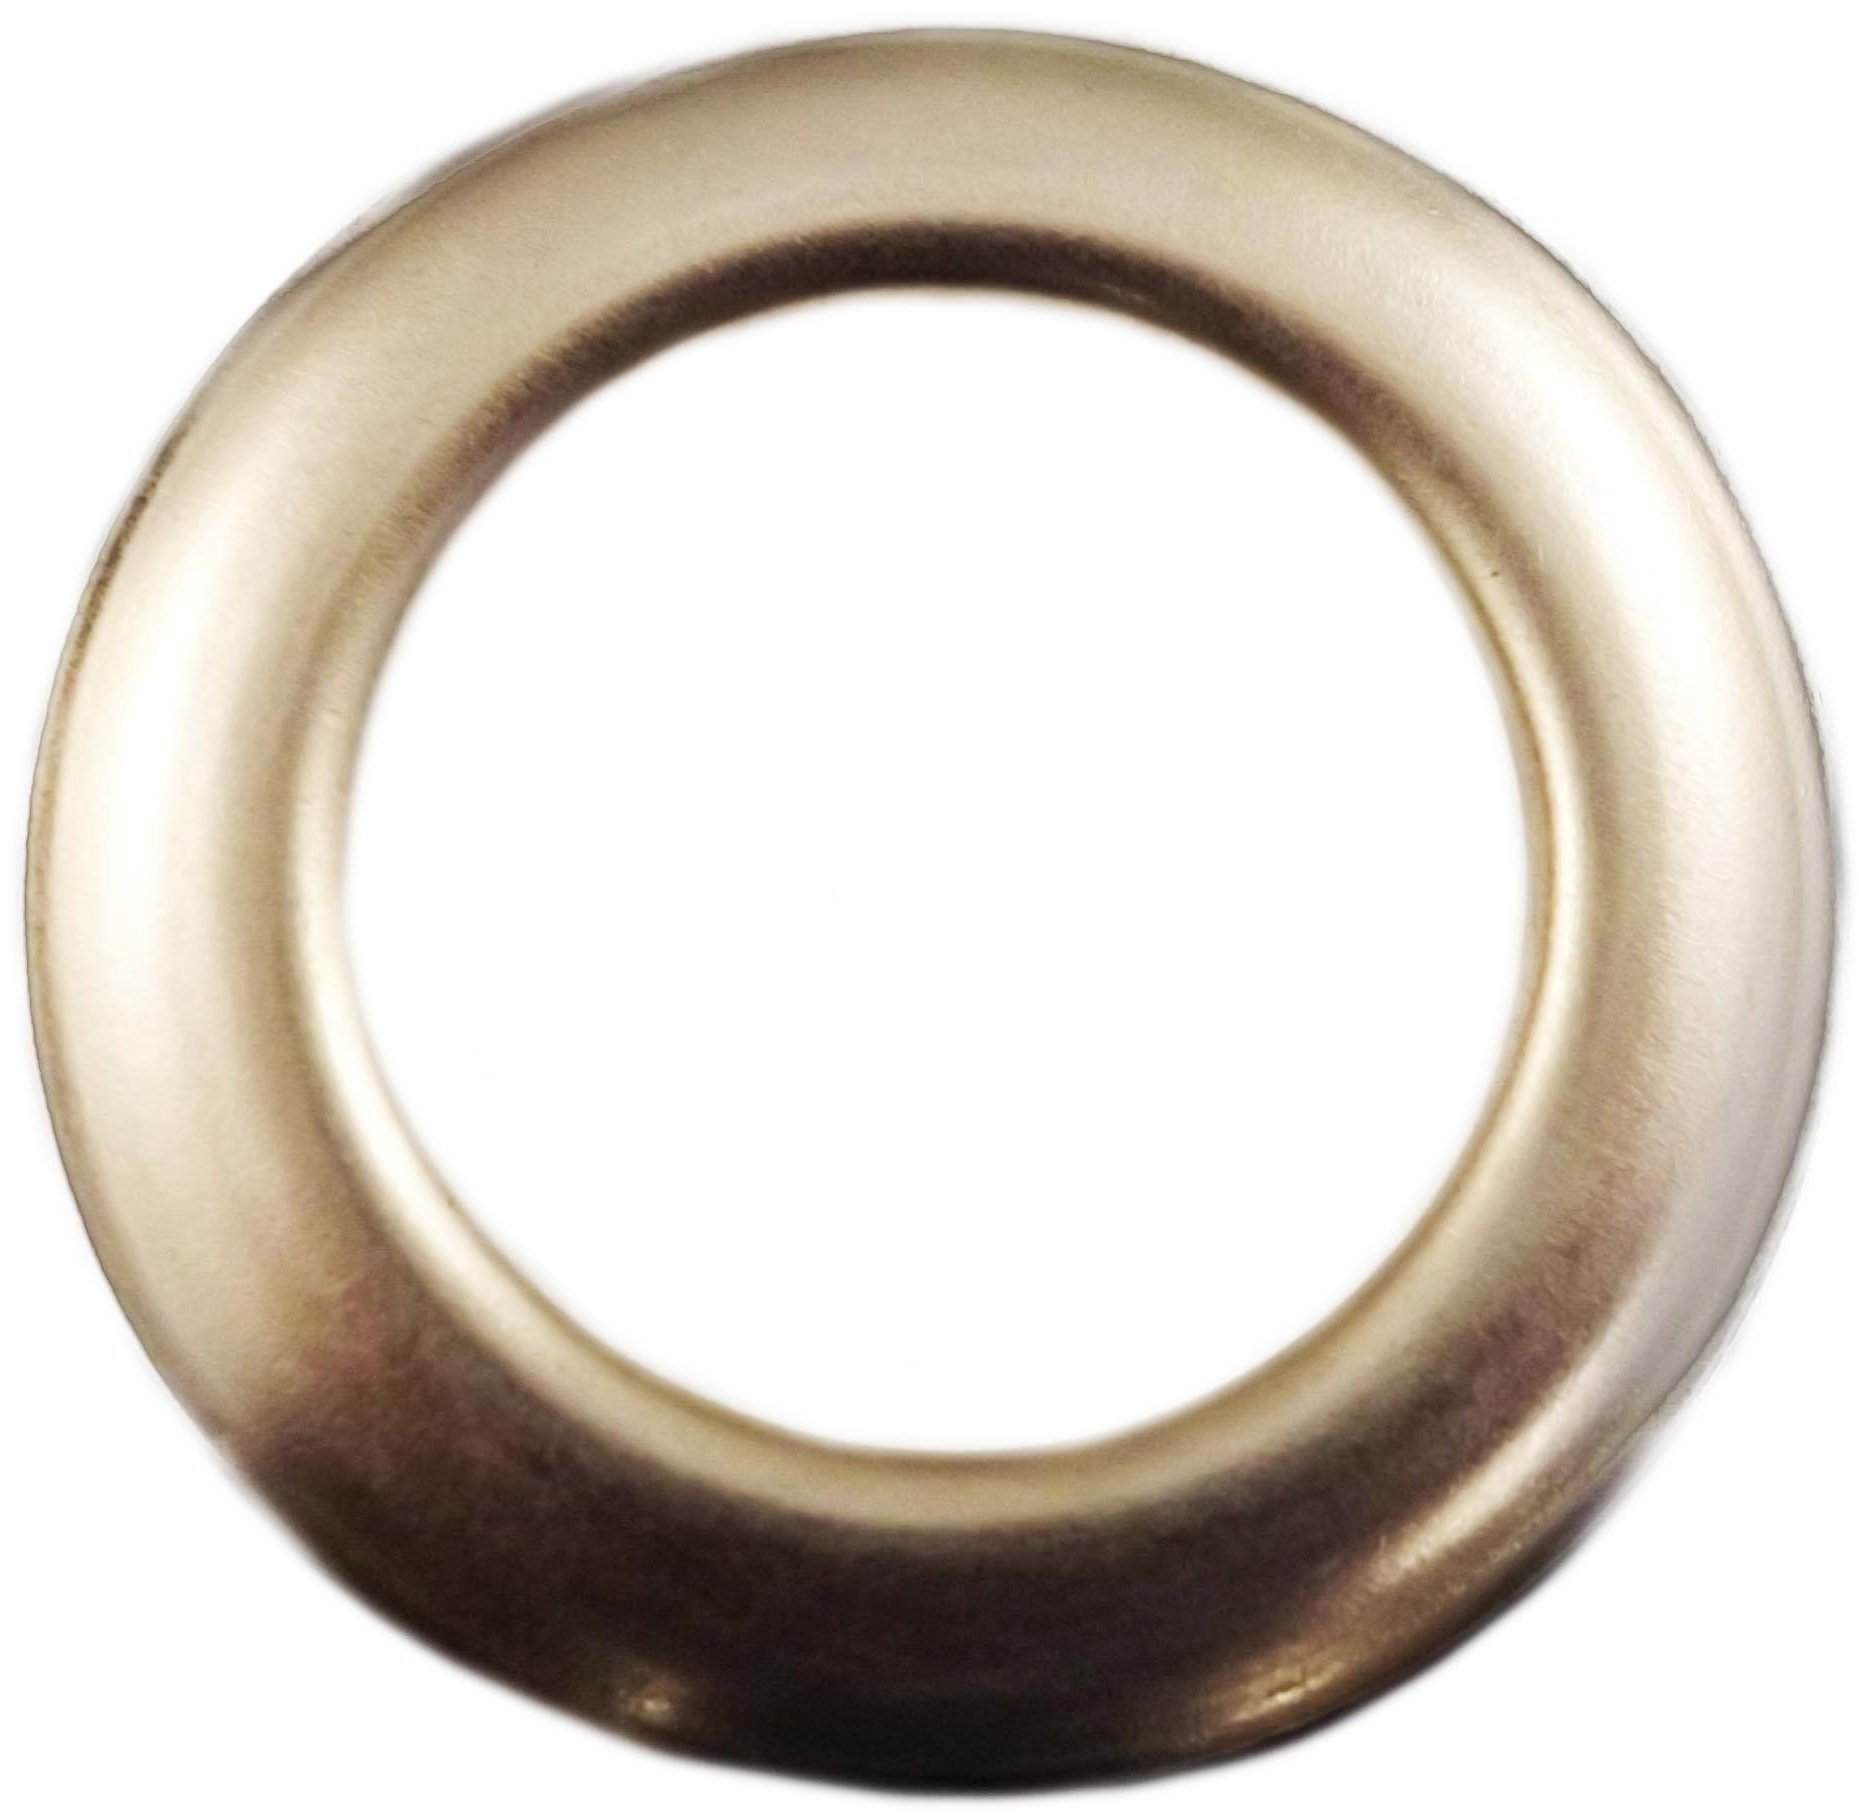 Large Nickel Metal Curtain Drapery Hardware Supplies #12 - 1 9/16 inch Inner Diameter Decorative Grommet/Rings w/Washer Eyelet Lot of 10 / 25 / 50 / 100 pcs (Pack of 50) by Lushes Curtains